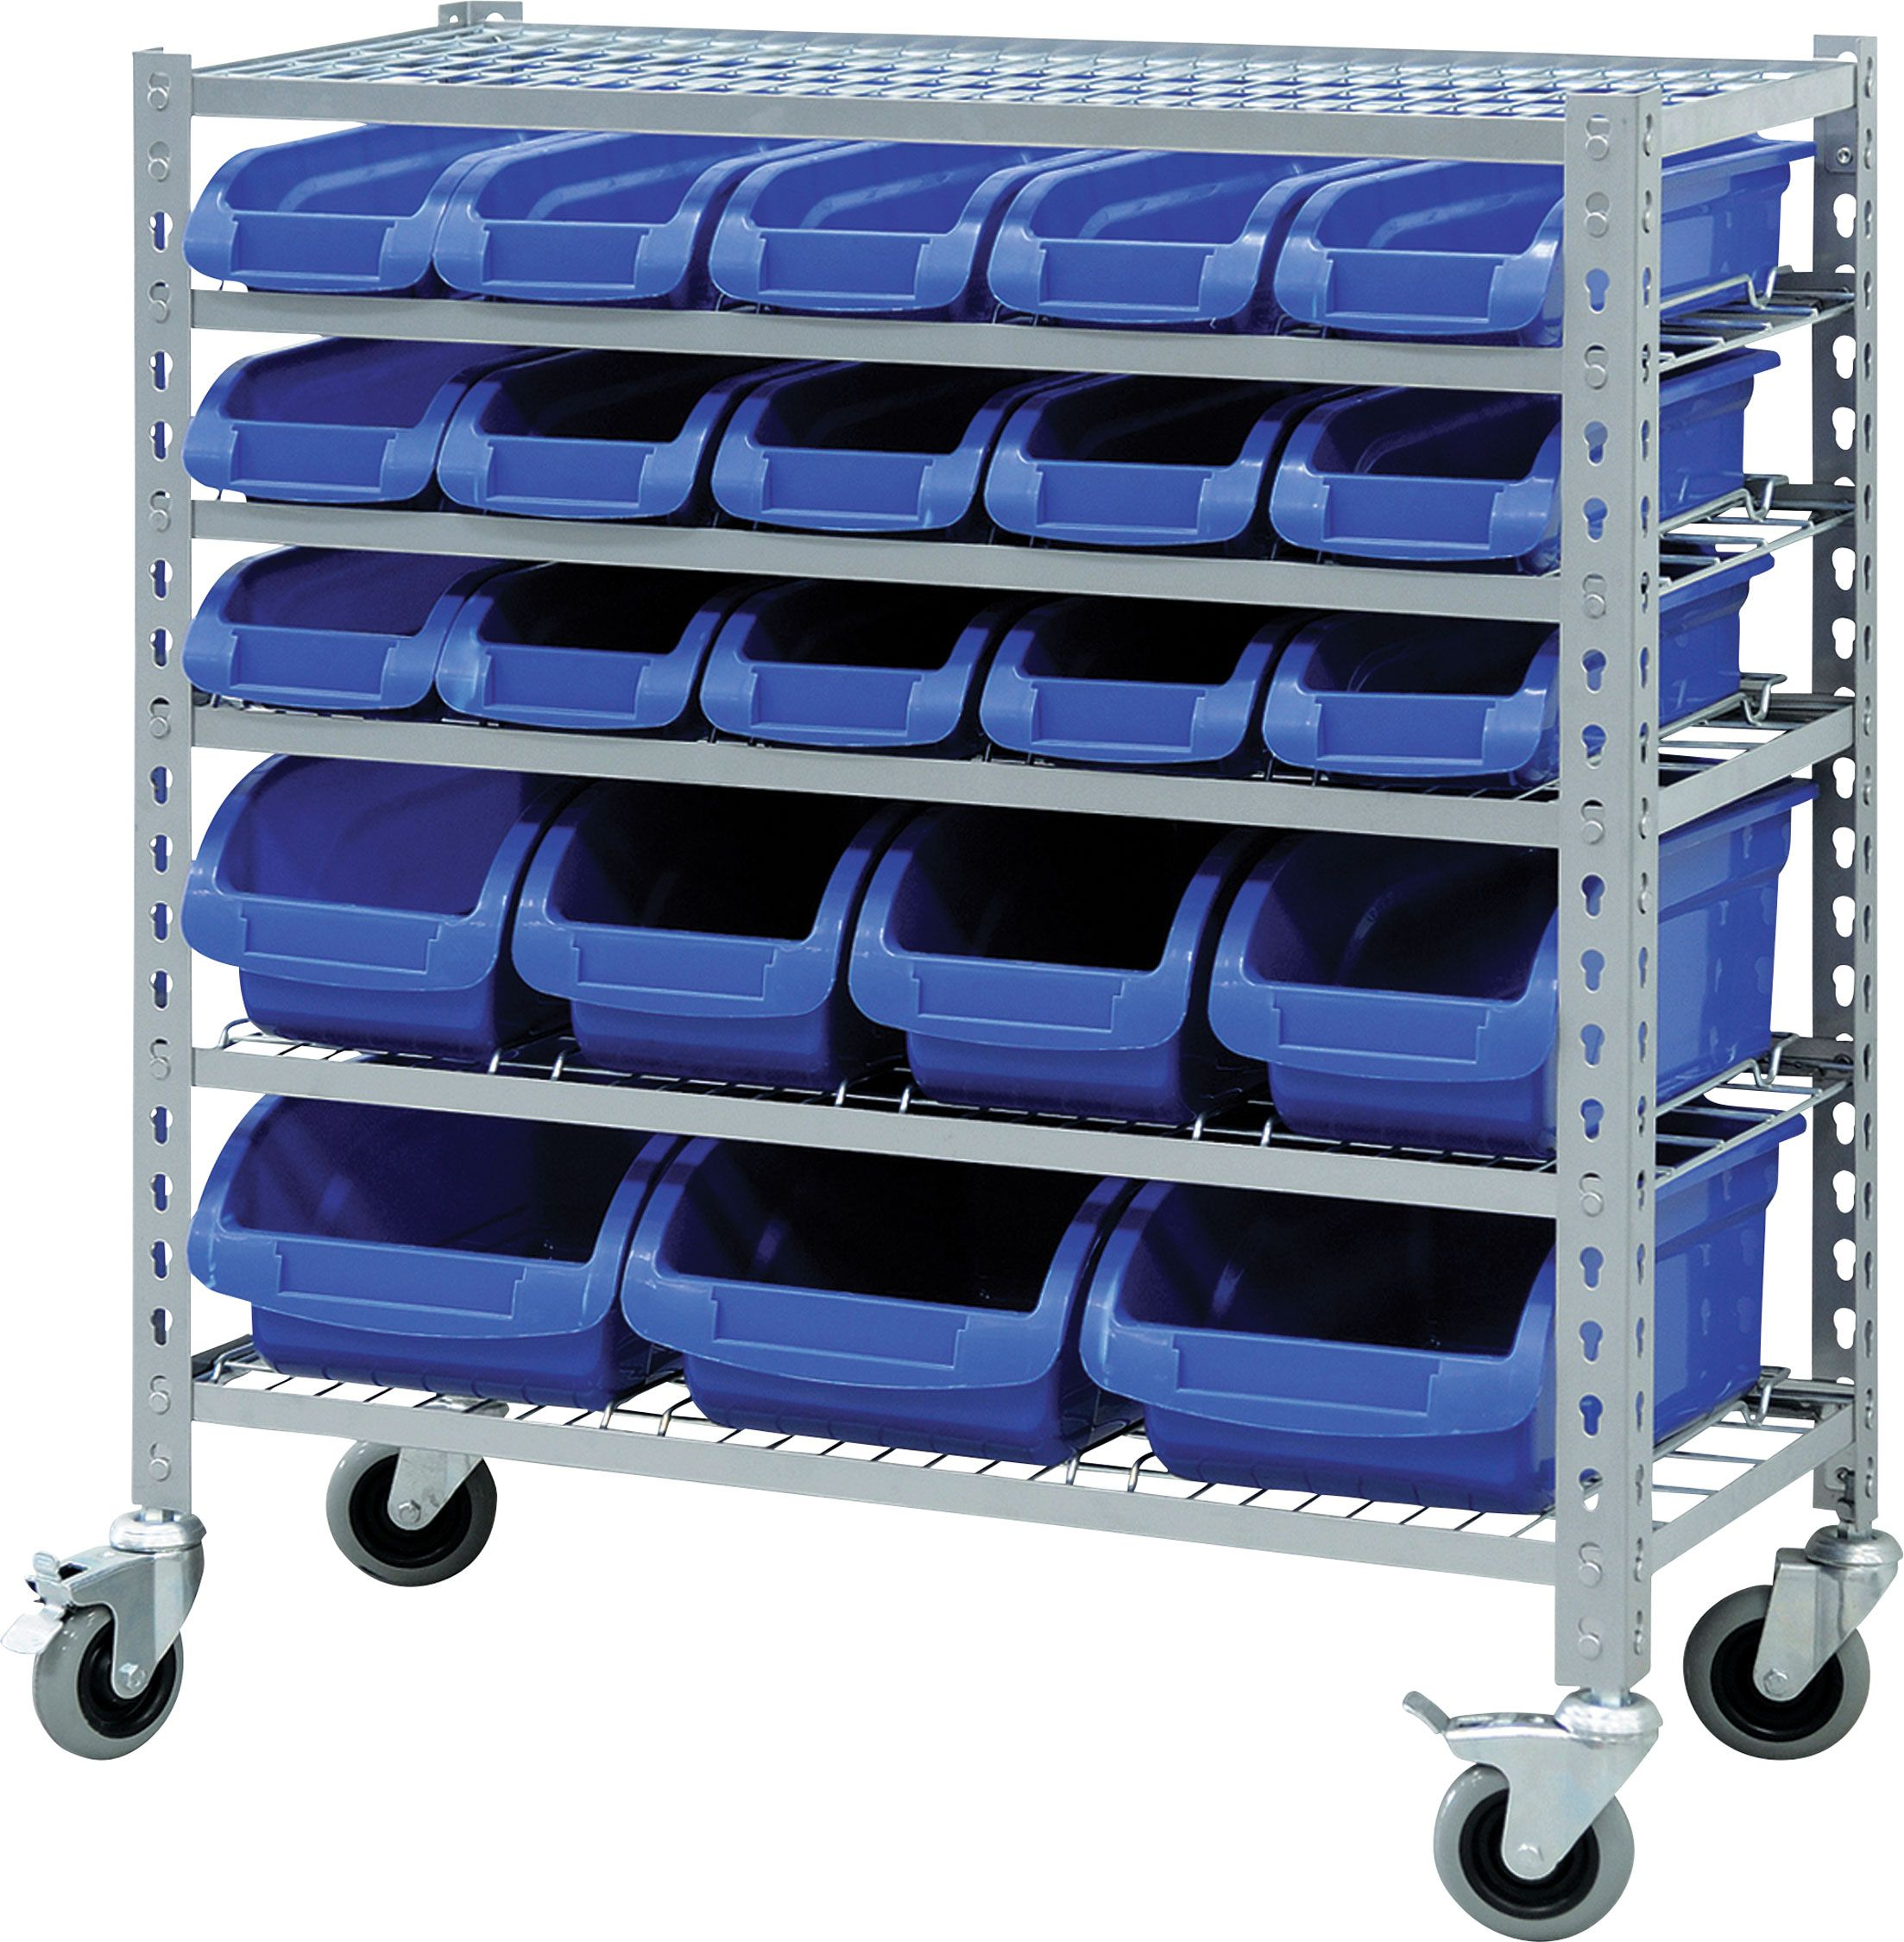 Racking Solutions Multipurpose 6 Tier Mobile Storage Unit Complete with 22 Bins.